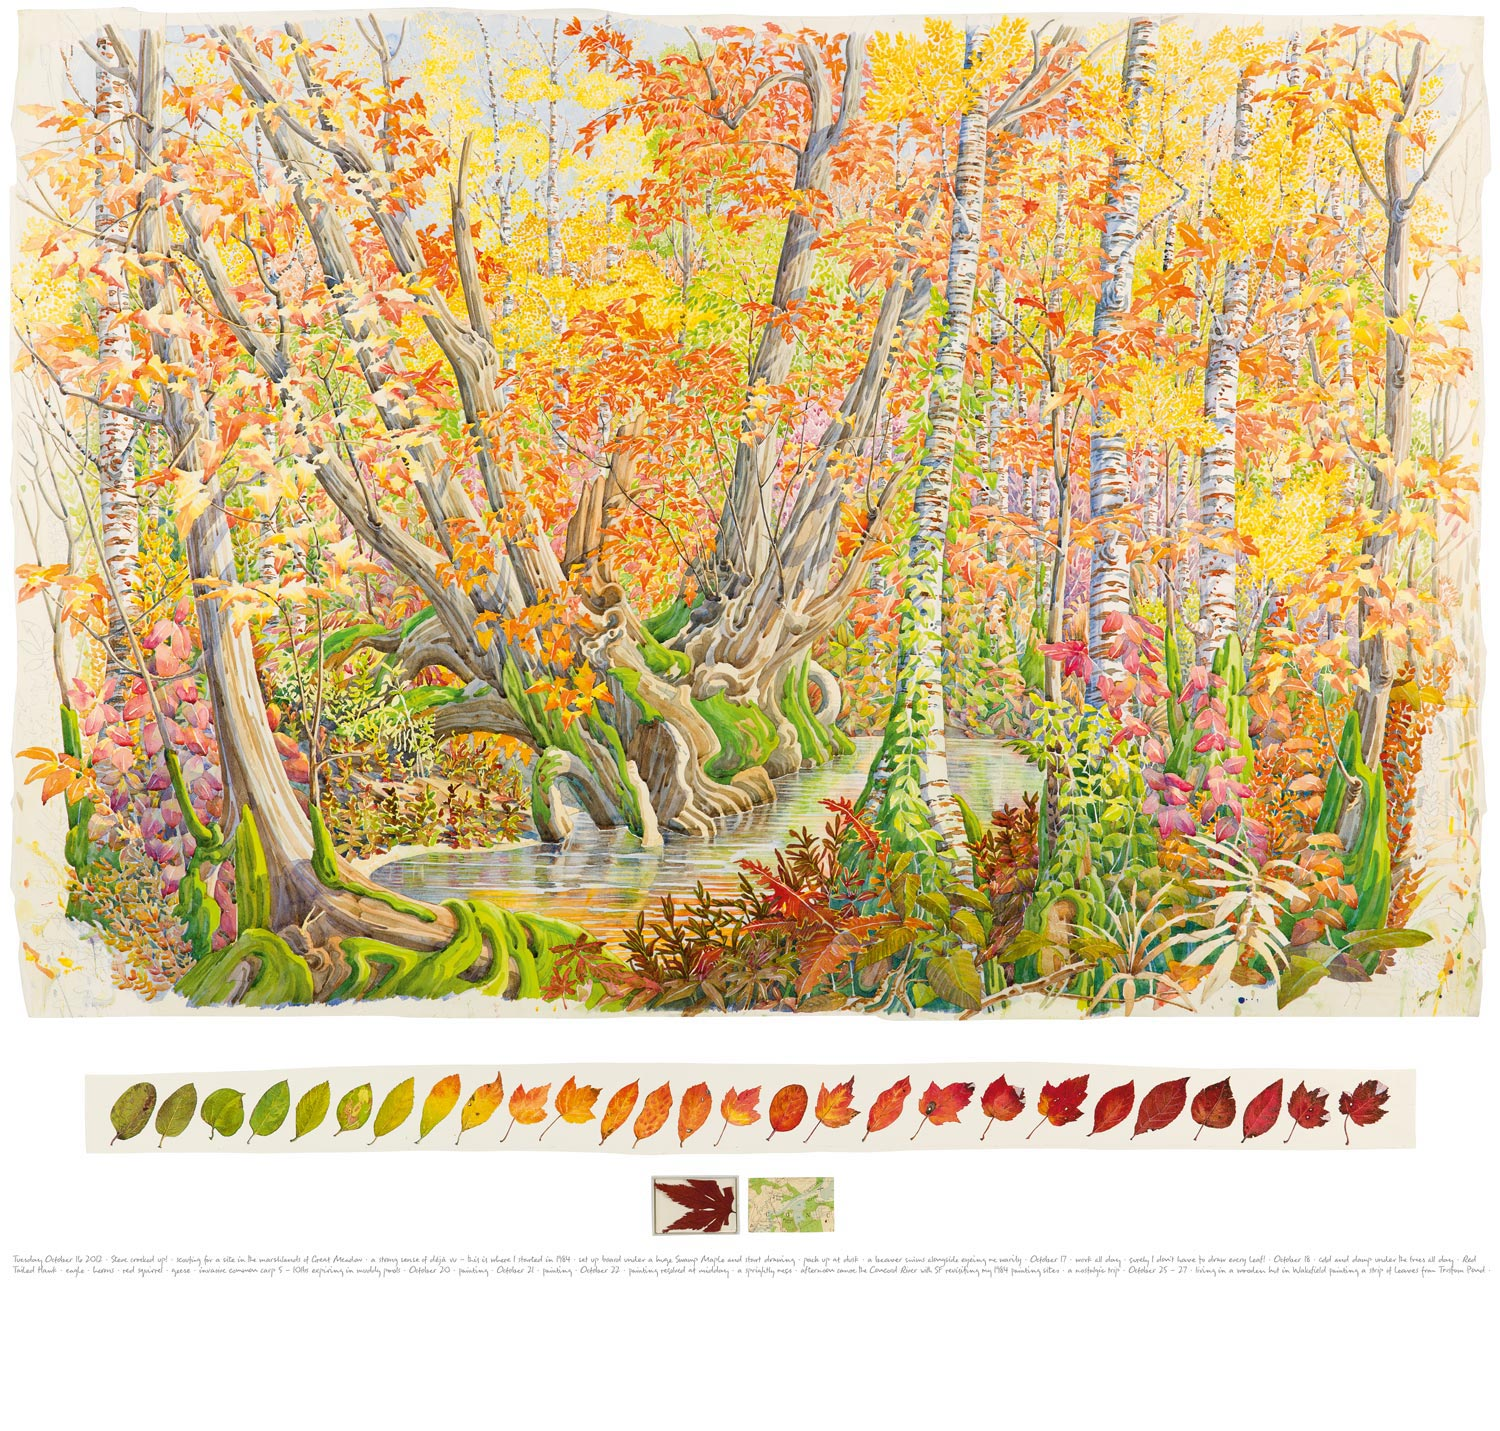 Tony Foster,  Fall Colour in Great Meadow, Concord , 2012 | Watercolor and graphite on paper, maple leaf, acrylic box, map |36 x 52 3/4 in. / 3 3/8 x 47 5/8 in. / 2 1/8 x 6 1/2 in.